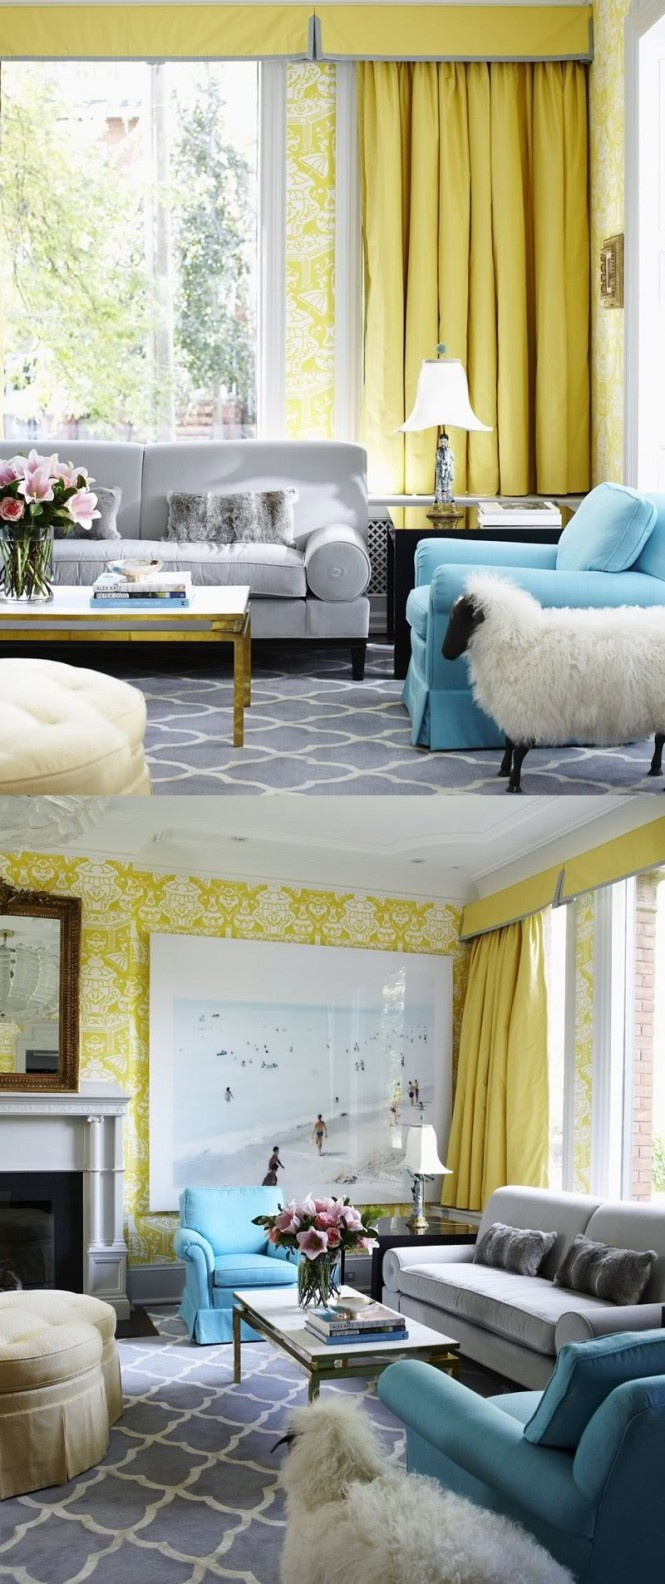 Best Yellow Living Room Ideas On Pinterest Yellow Teal 400 x 300